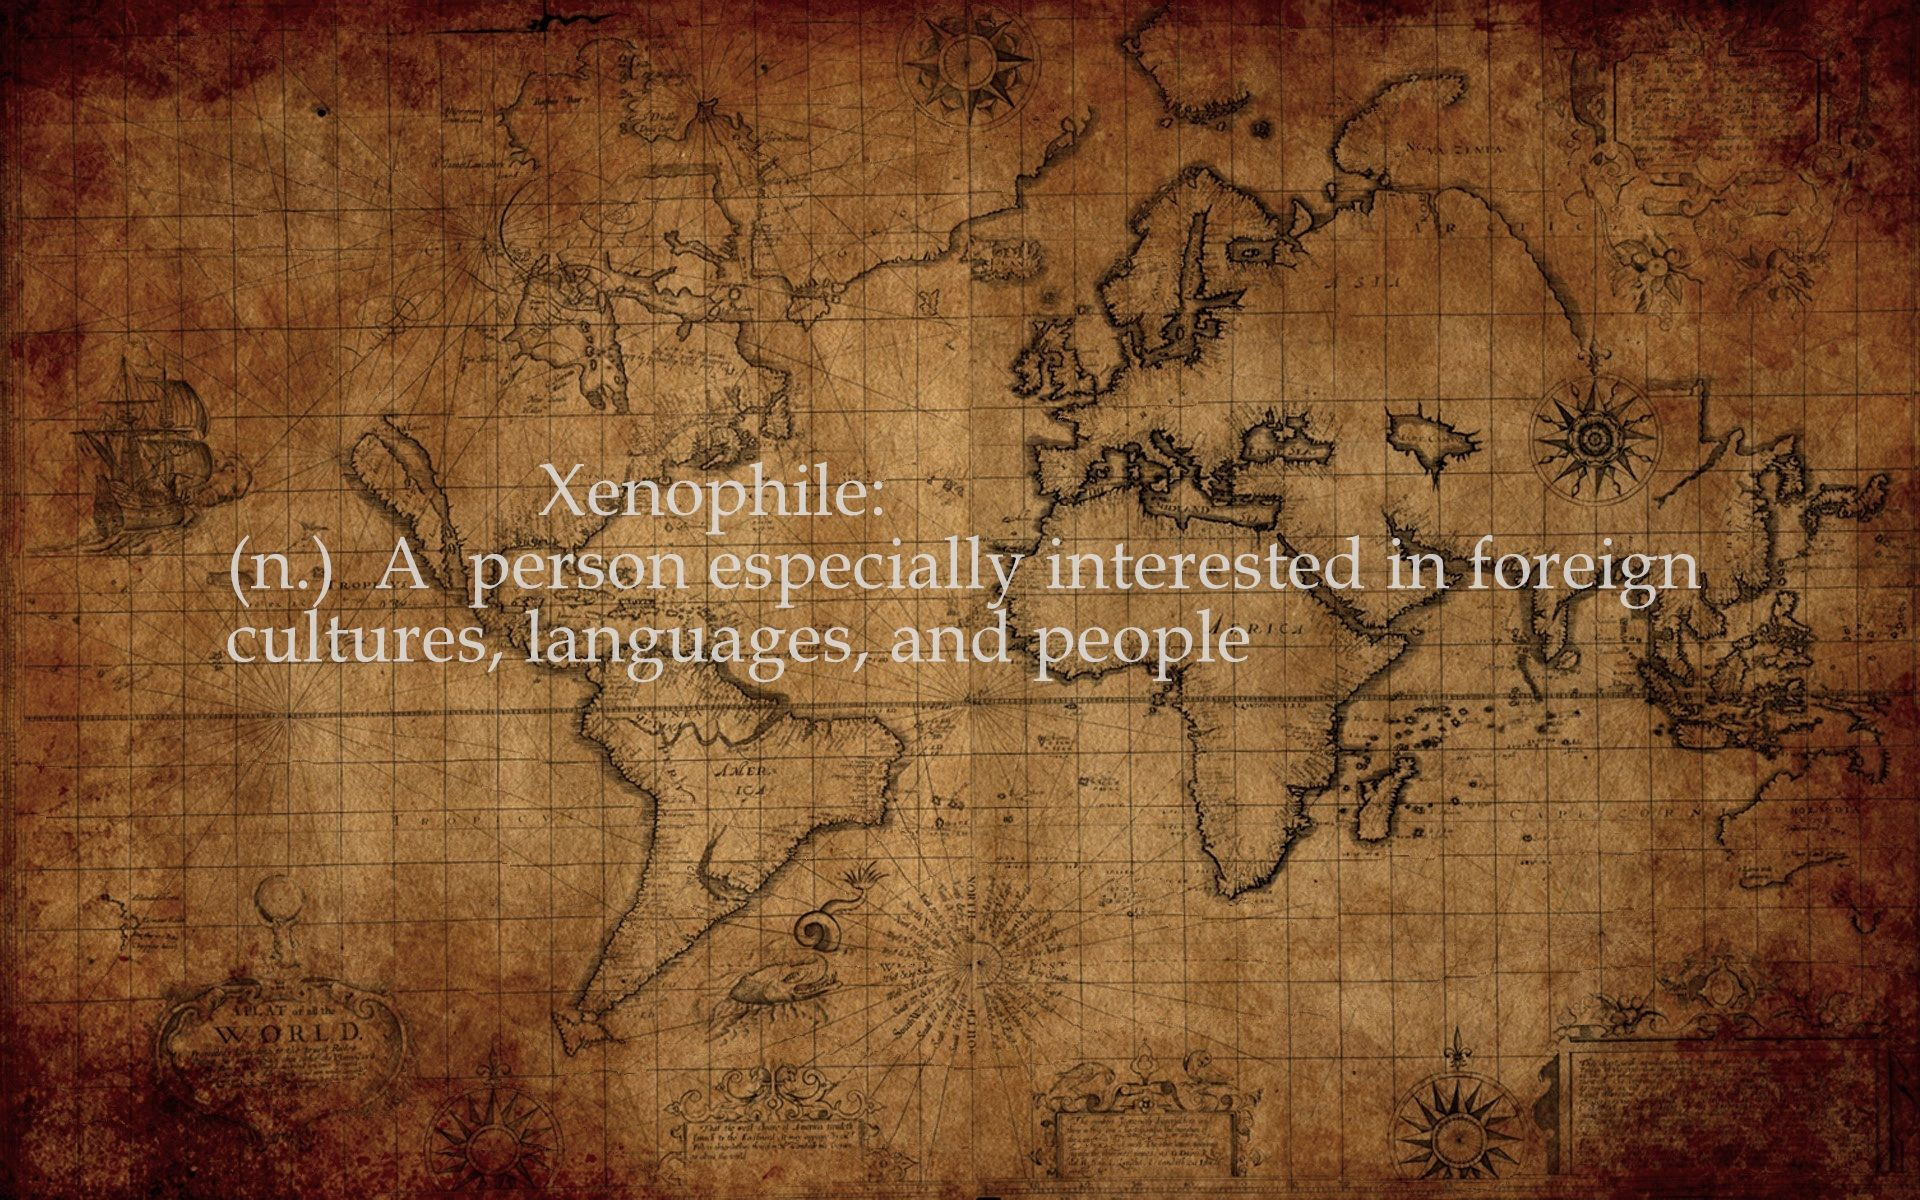 Xenophile at heart 3ings that inspire mee feels antique world map by nekarius on deviantart xenophile at heart gumiabroncs Image collections